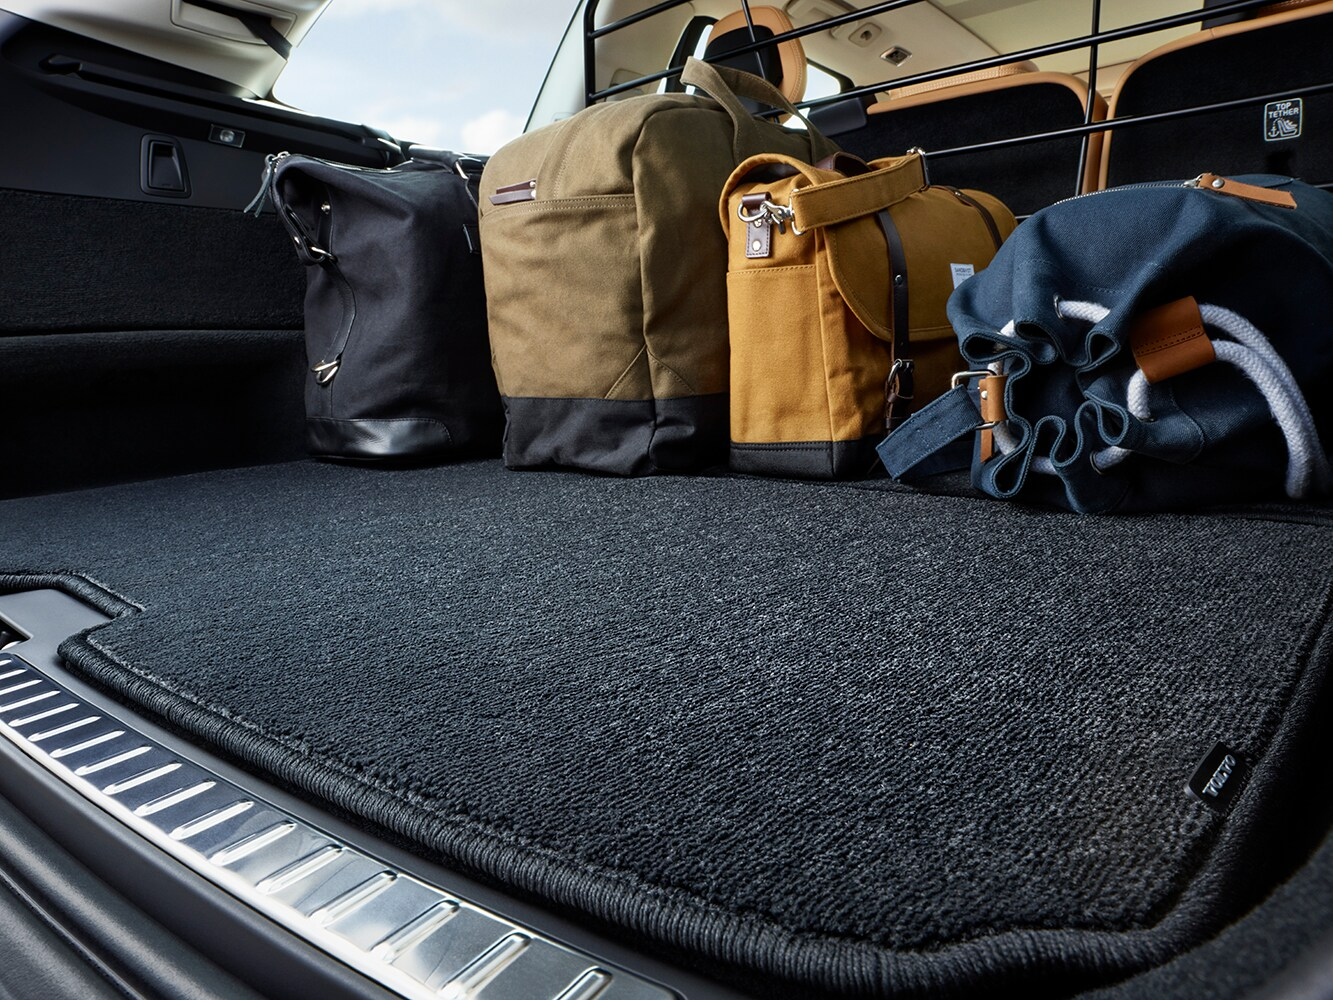 Close up view of interior of cargo space in a Volvo XC90 showing luggage